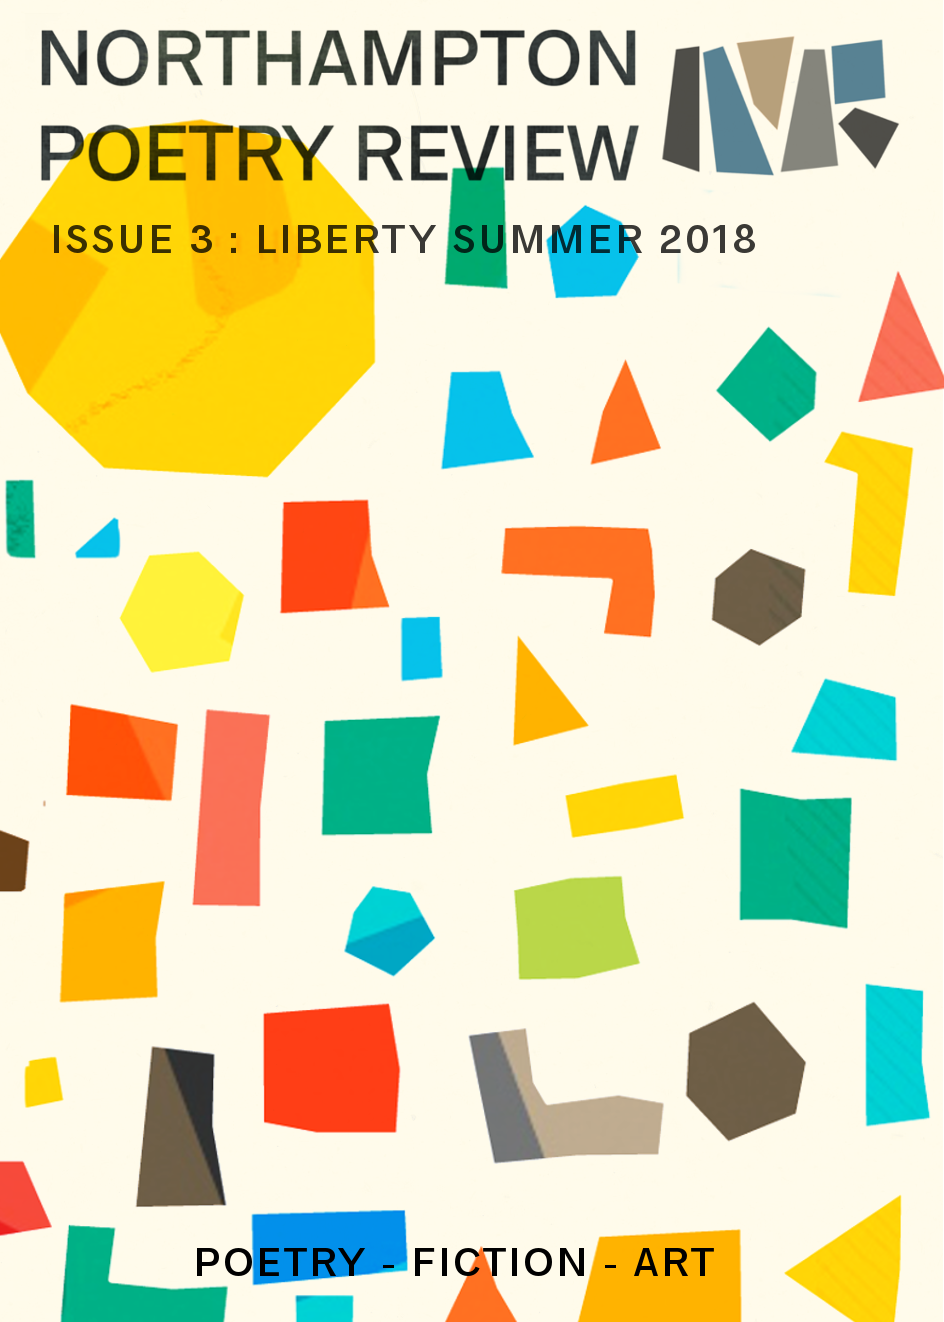 Download Northampton Poetry Review Issue 3: Summer 2018 [.PDF] by clicking on the cover image.  Or read via issuu below